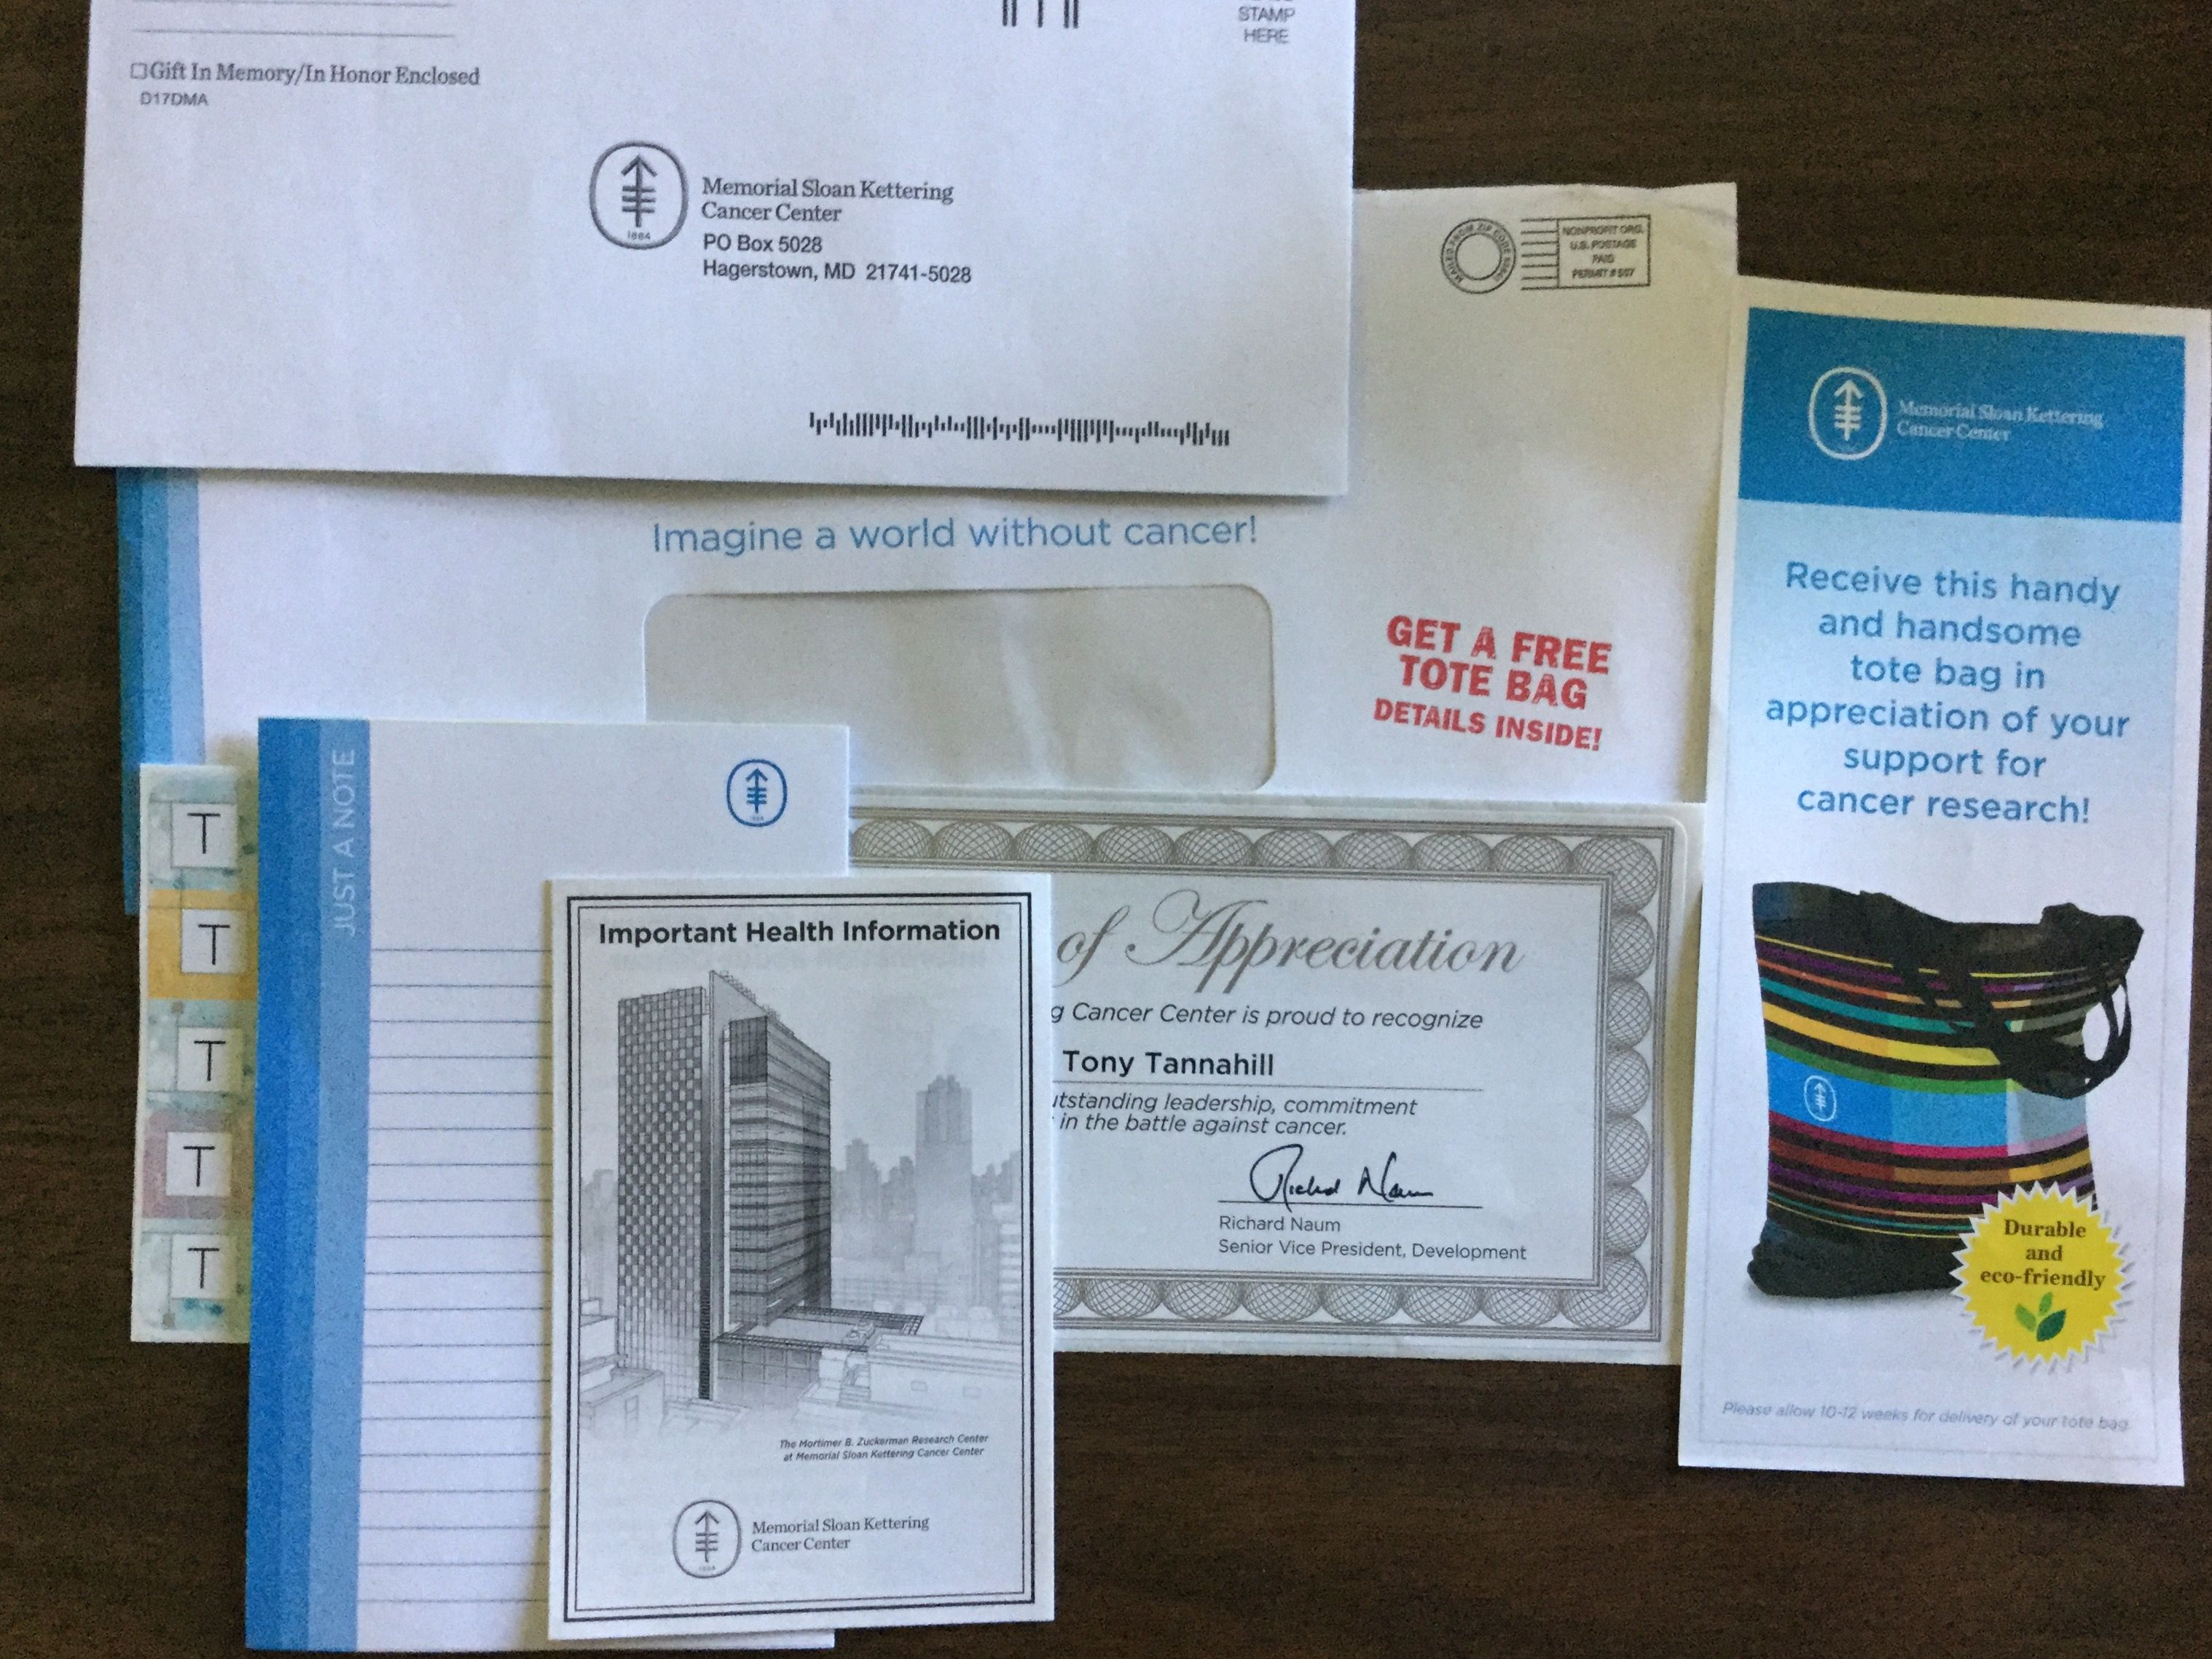 Free Address Labels Samples Free Memorial Sloan Kettering Cancer Center Note Pad And Address .